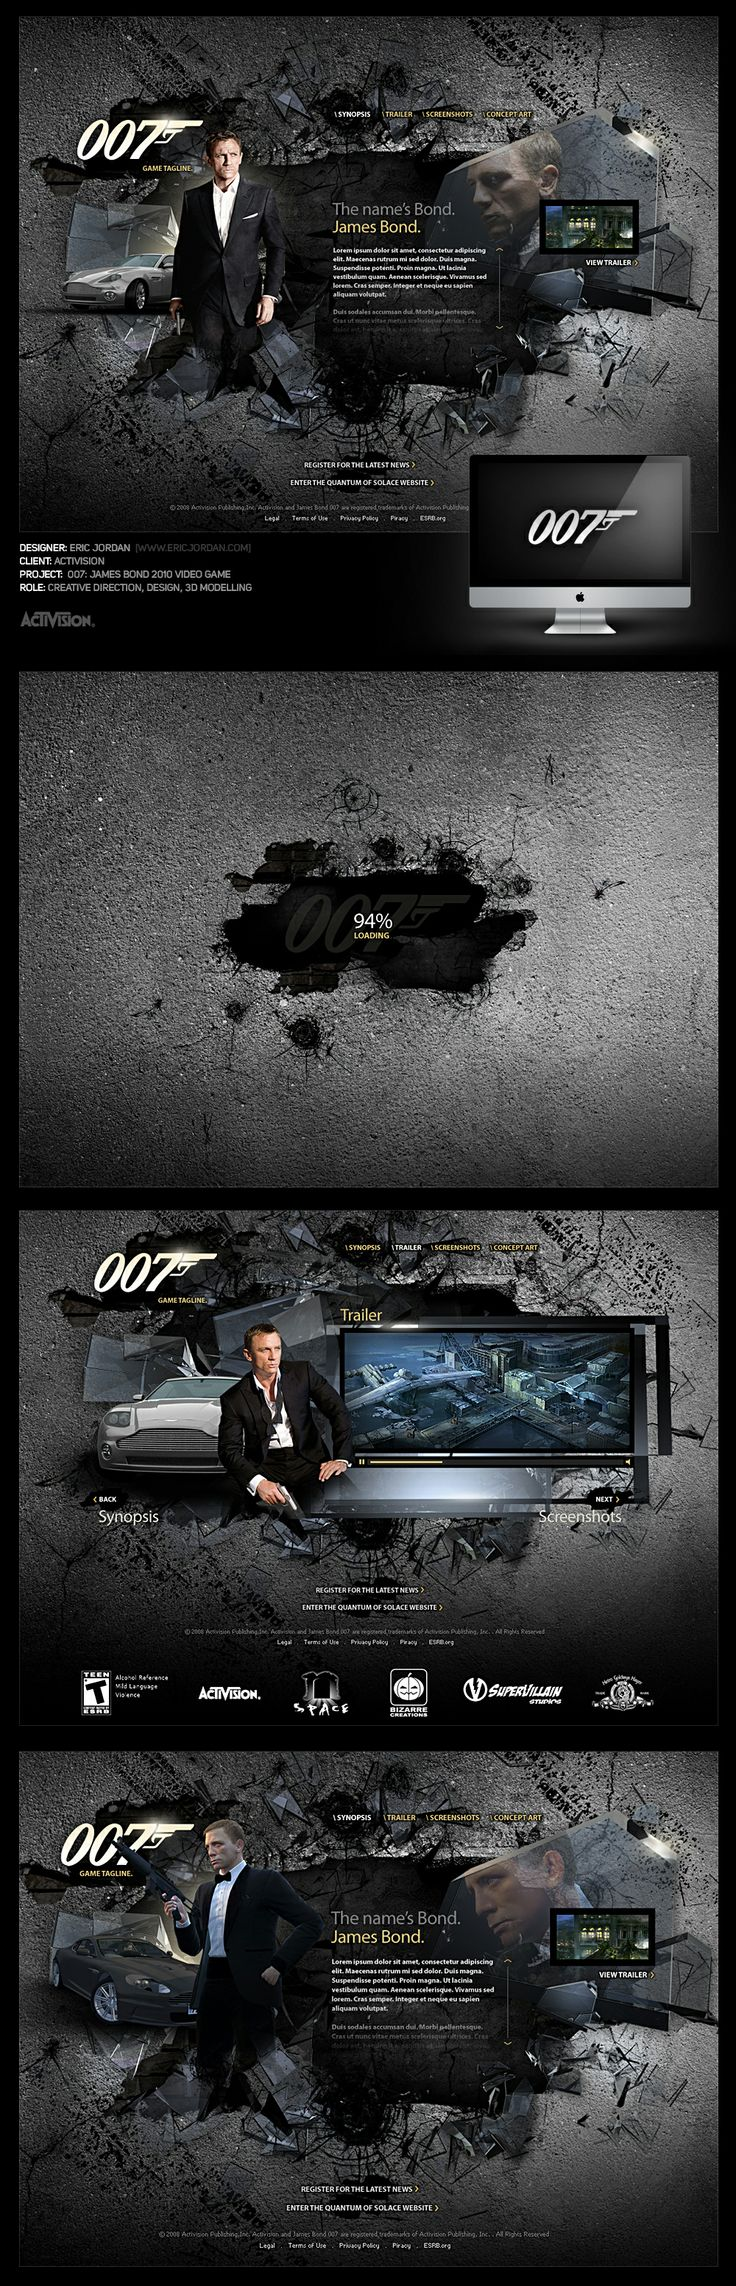 007: James Bond 2010 Website Pitch - Designed By Eric Jordan (www.ericjordan.com) #webdesign #graphic #design